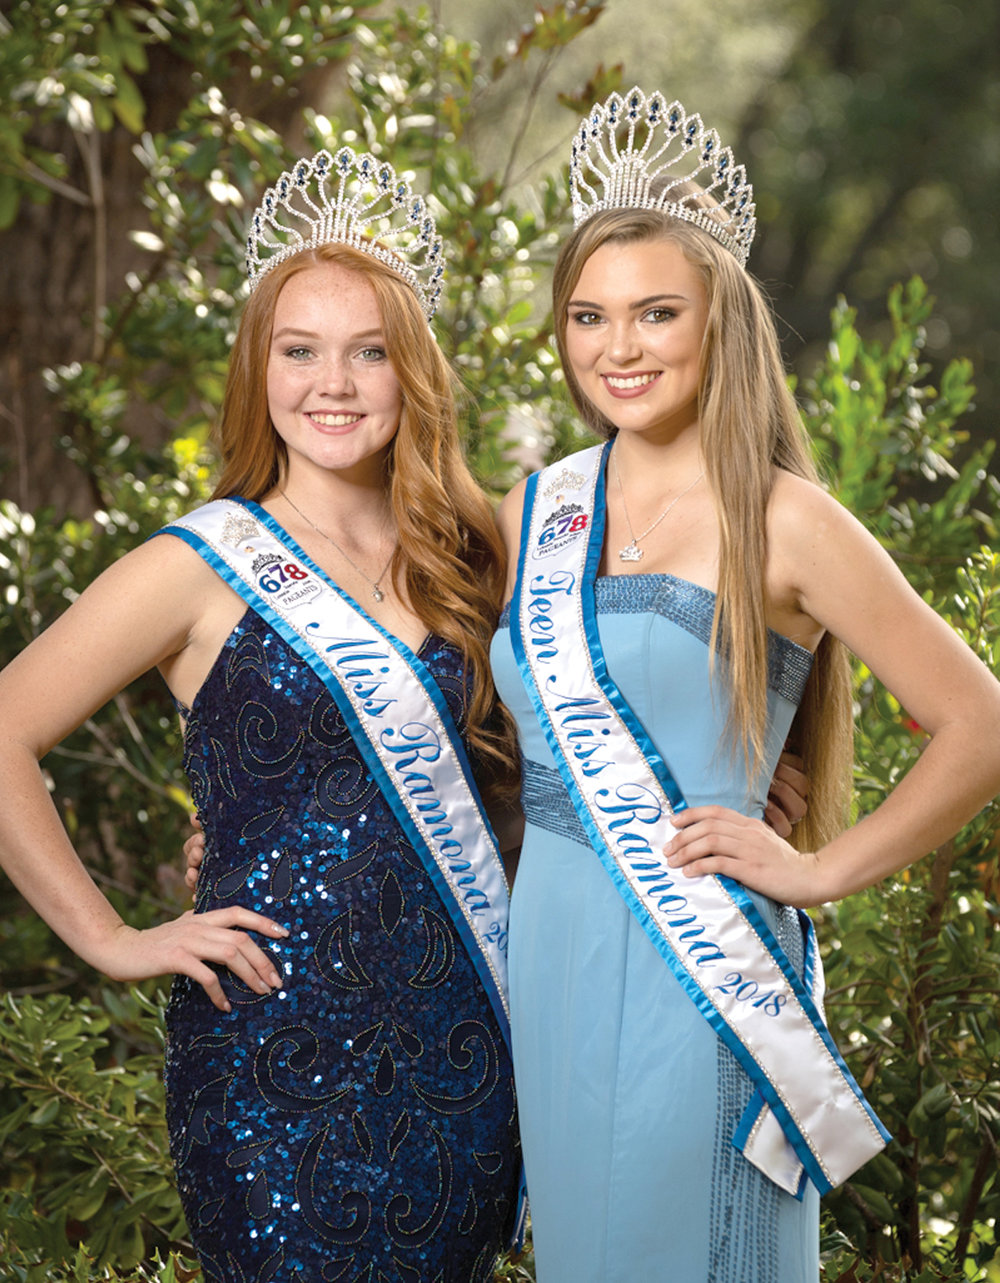 Miss Ramona 2018 Megan Kelly, left, and Teen Miss Ramona 2018 Makenna Hyland.   Photo by Rob Riingen Photography